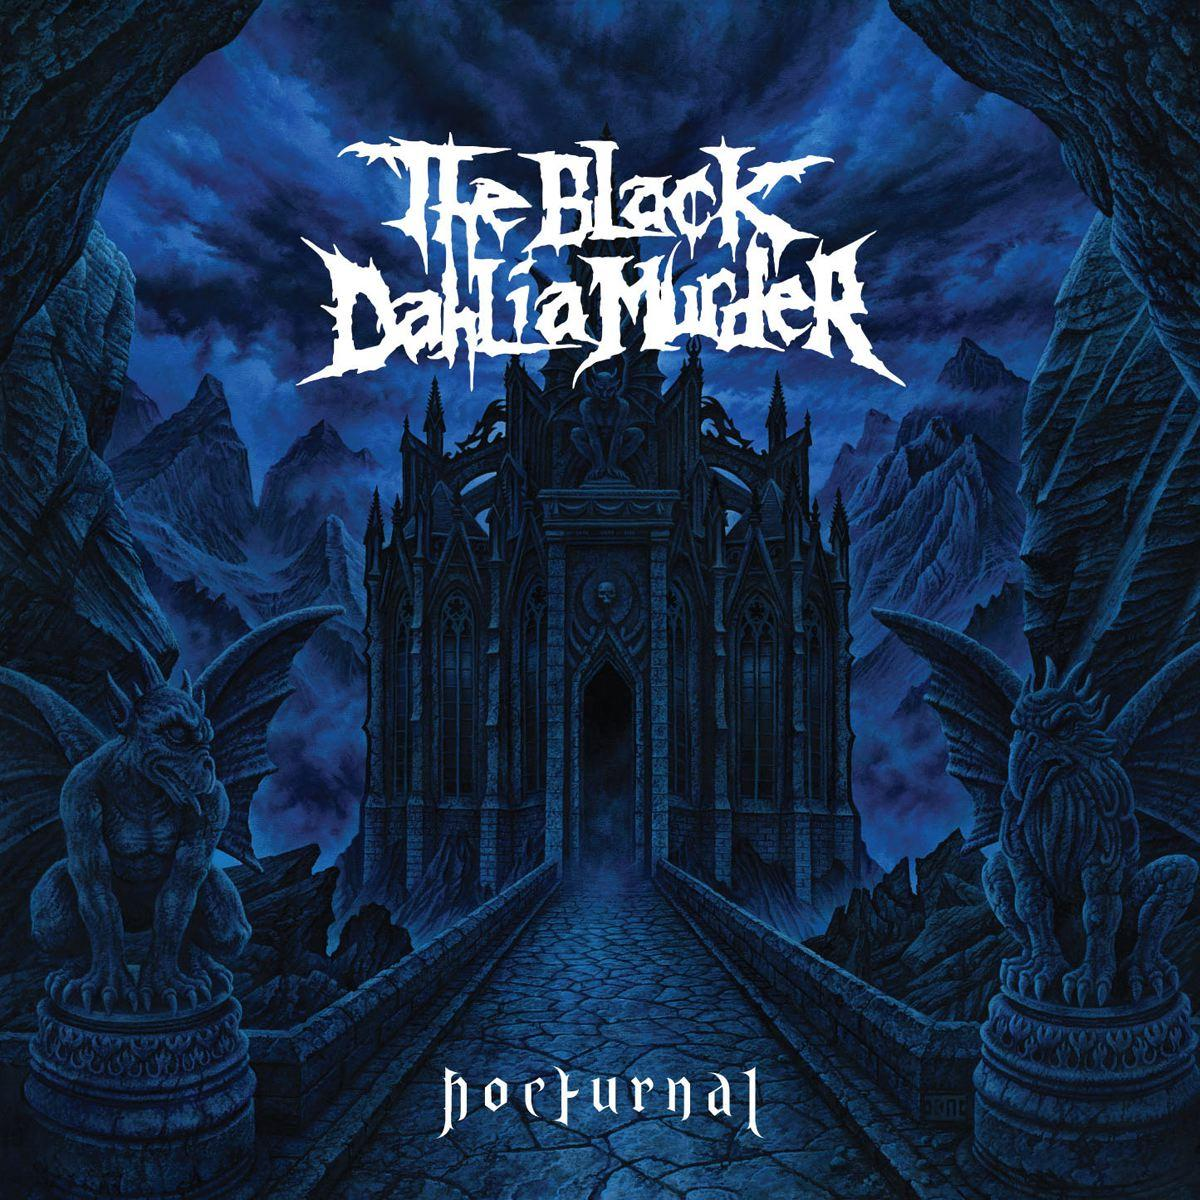 Nocturnal cover (Click to see larger picture)